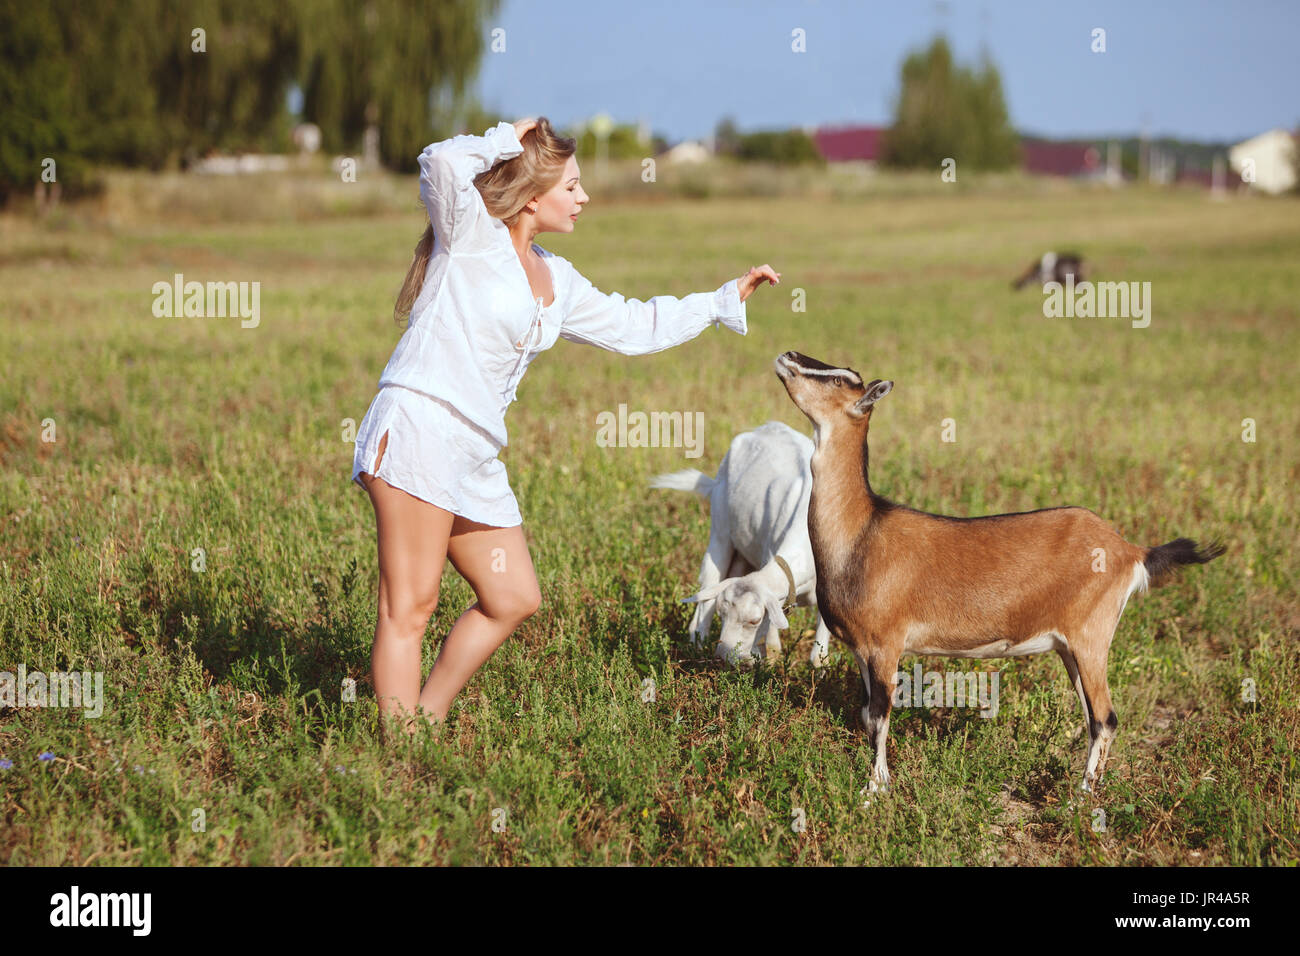 Woman is stroking a domestic goat, they are in a field on a farm. - Stock Image